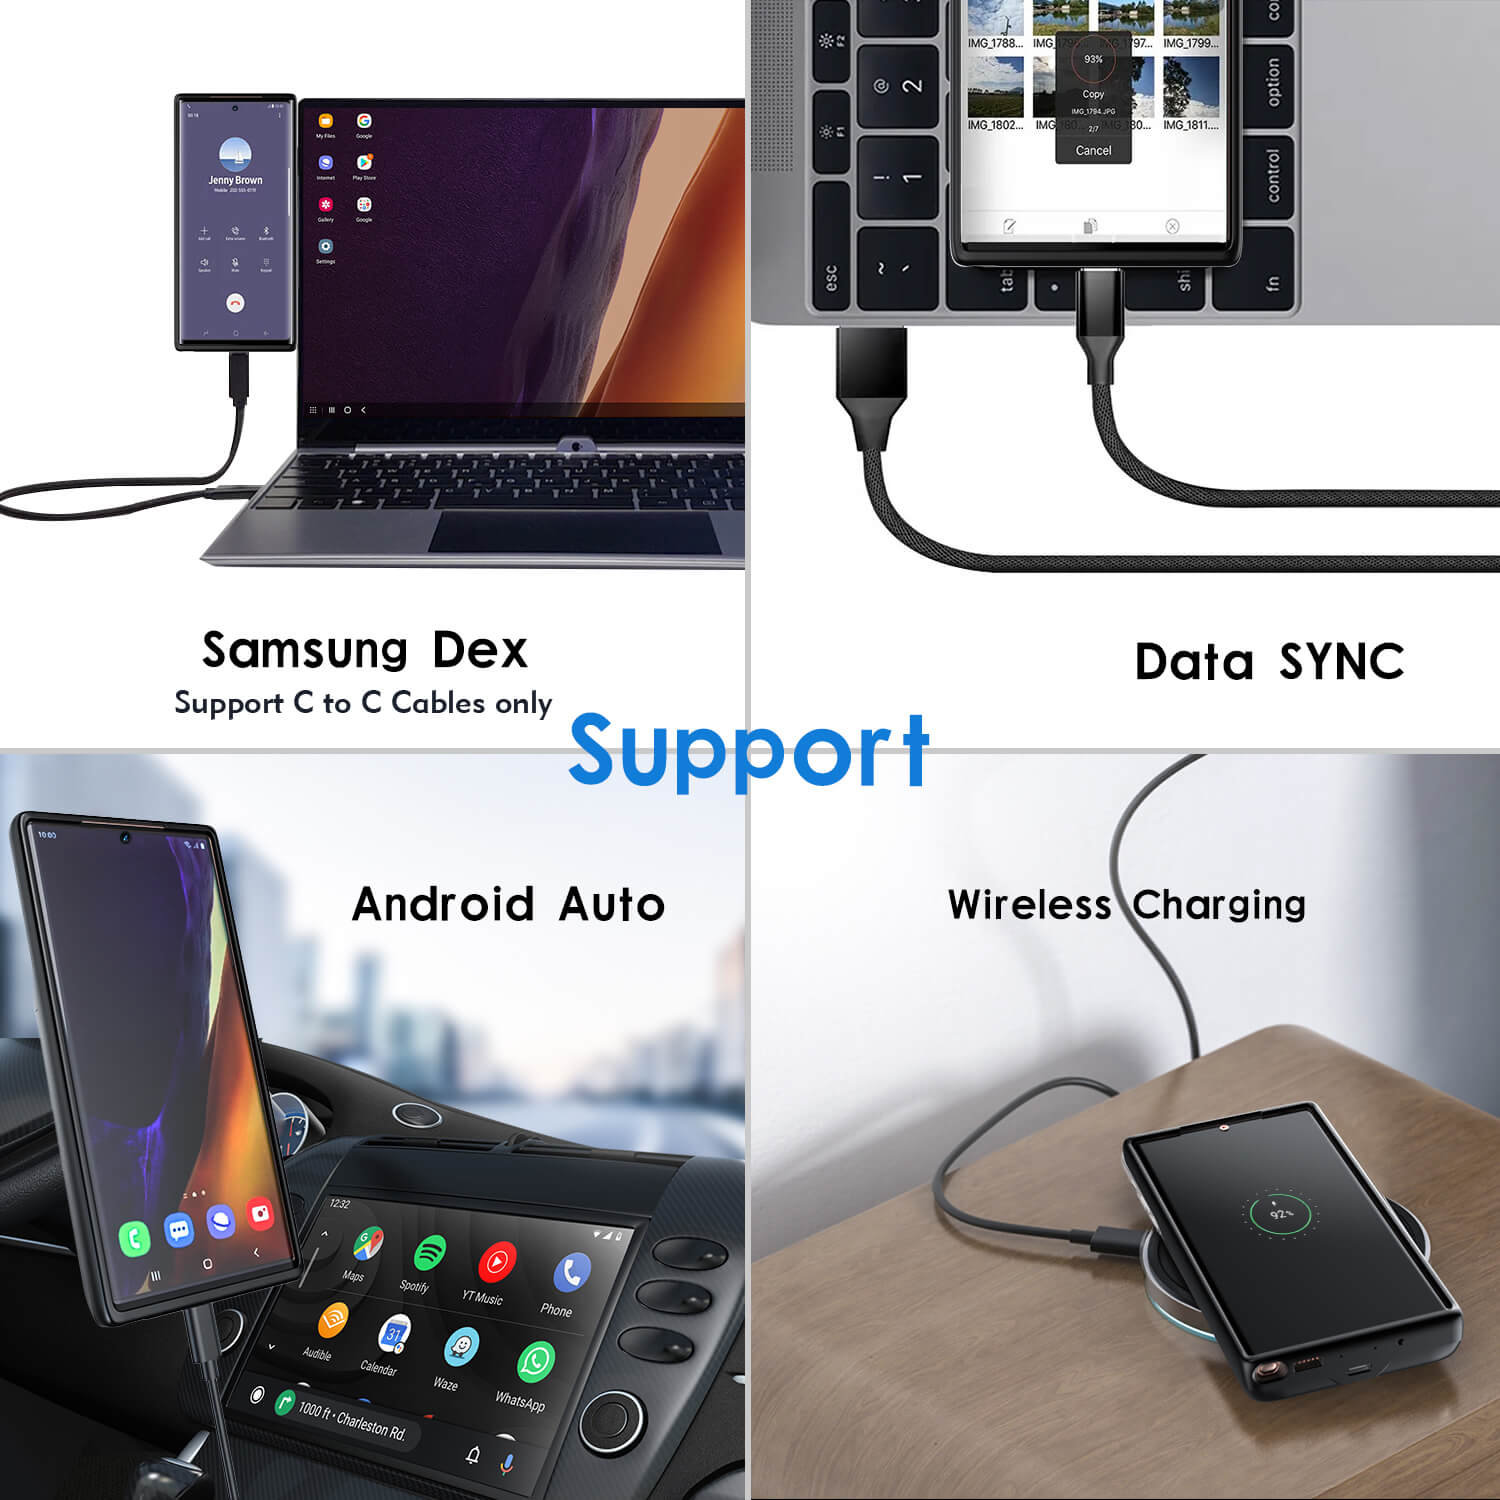 galaxy note 20 battery case, 5000mAh, fast charging, qi wireless charging, wired usb c headset, otg, android auto, samsung dex, data sync